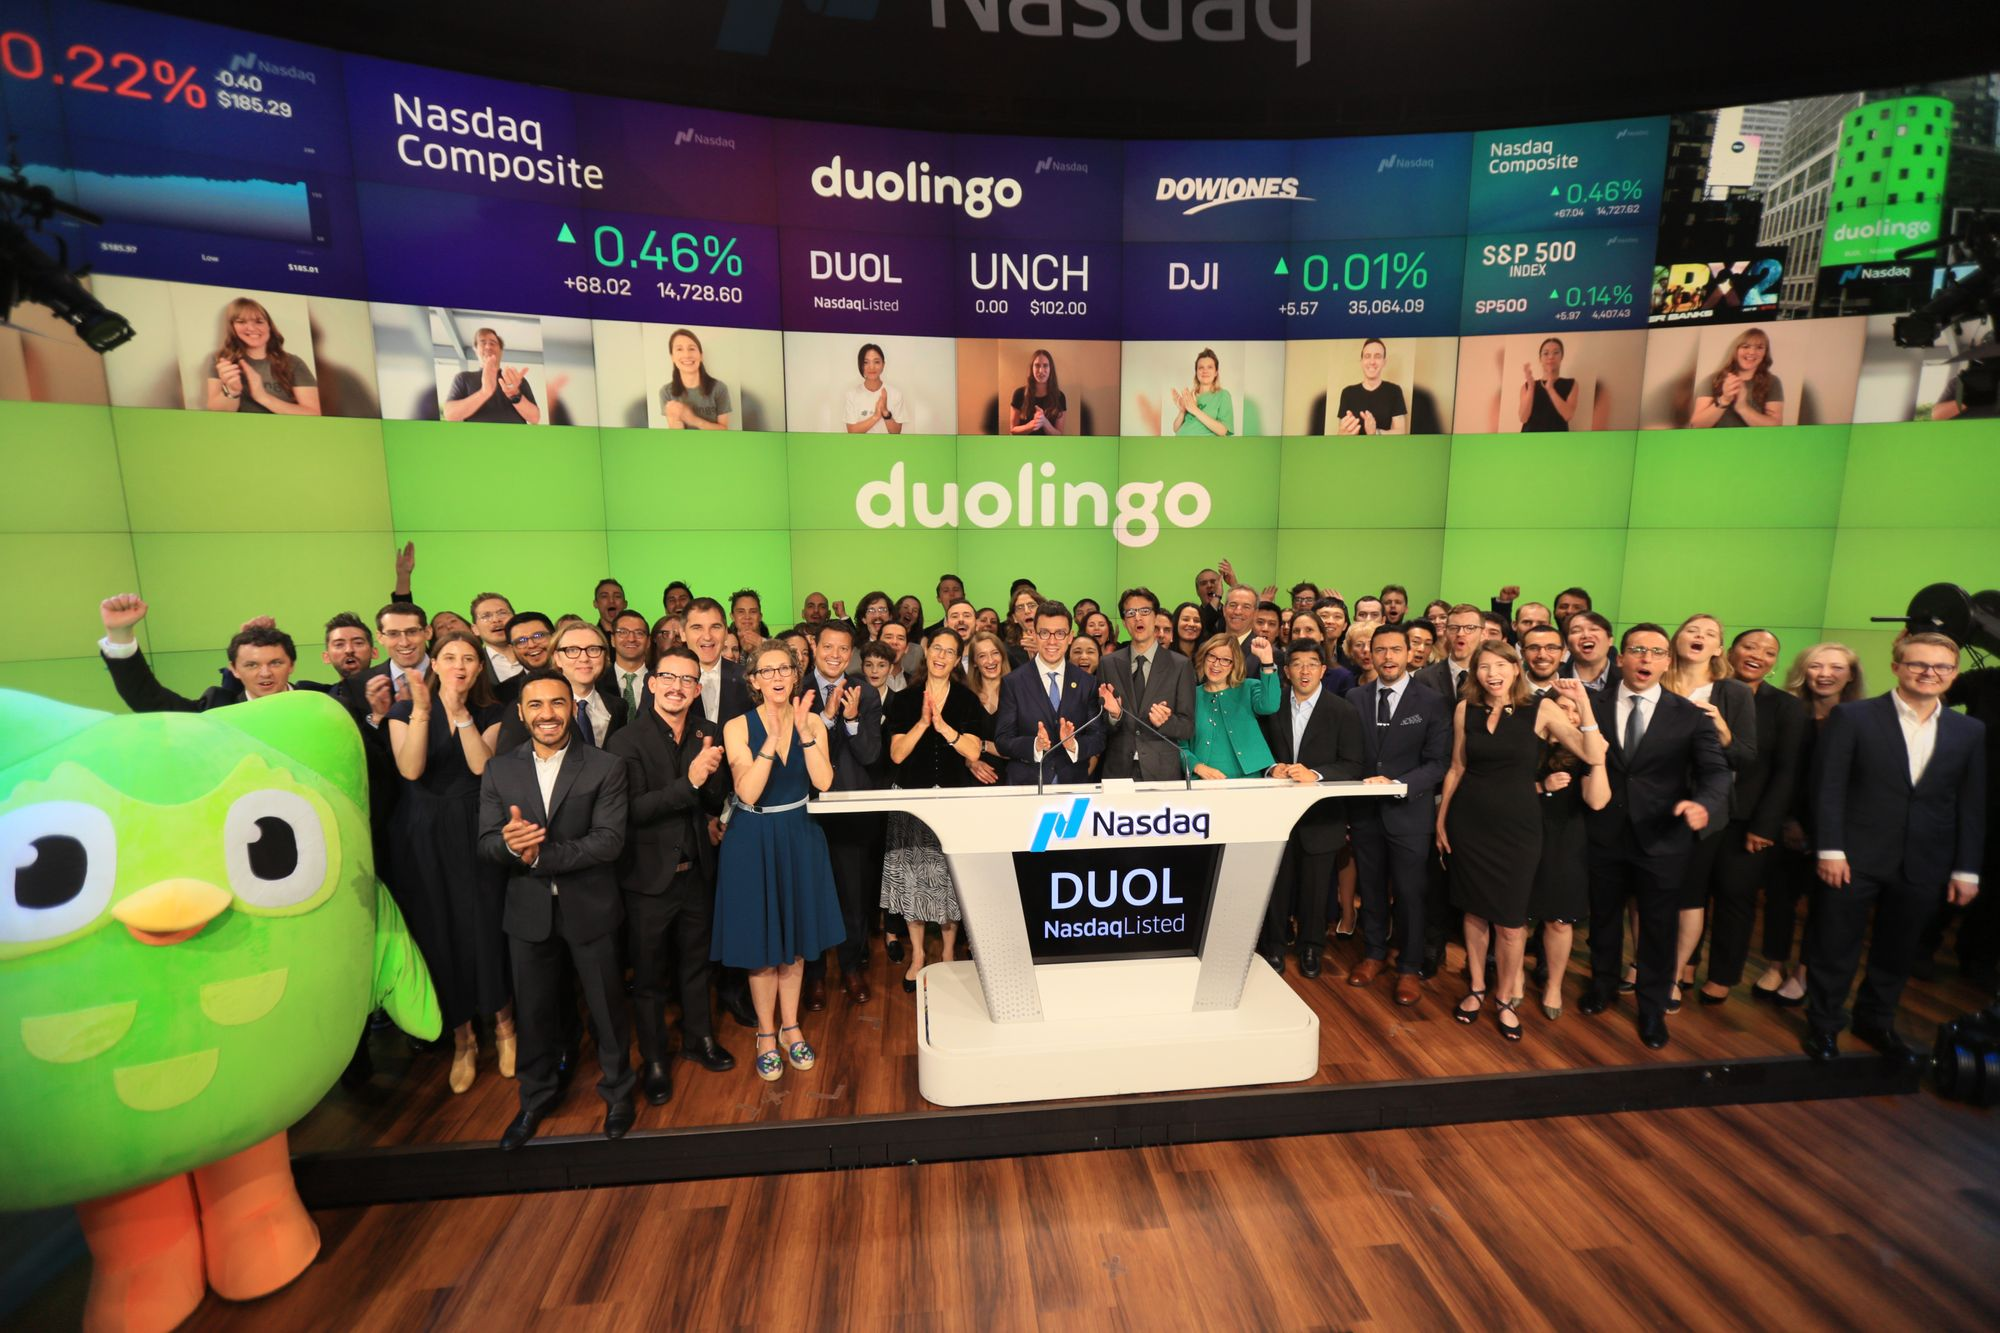 """photogrpah of blog post author and Duolingo co-founder and CEO, Luis von Ahn, standing with a group of ~100 Duolingo employees and the green Duolingo owl mascot at the Nasdaq podium which is labeled """"DUOL""""."""